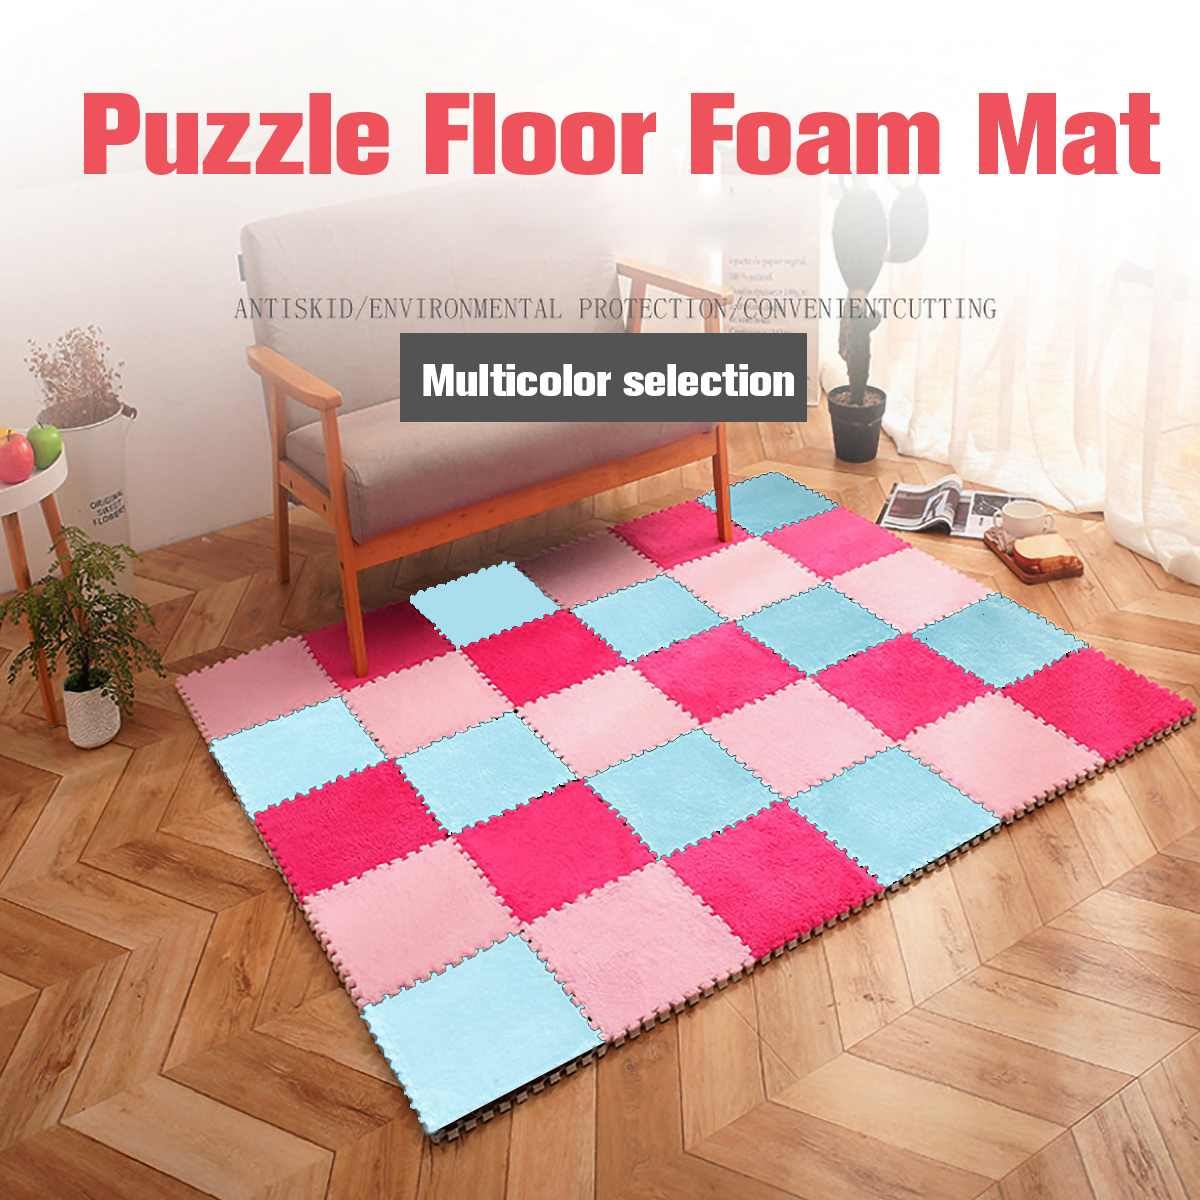 5Pcs/Set DIY Puzzle Baby Children Play Games Floor Mat Convenient Non-slip EVA Footcloth Carpet Shaggy Soft Area Rug 26x26cm